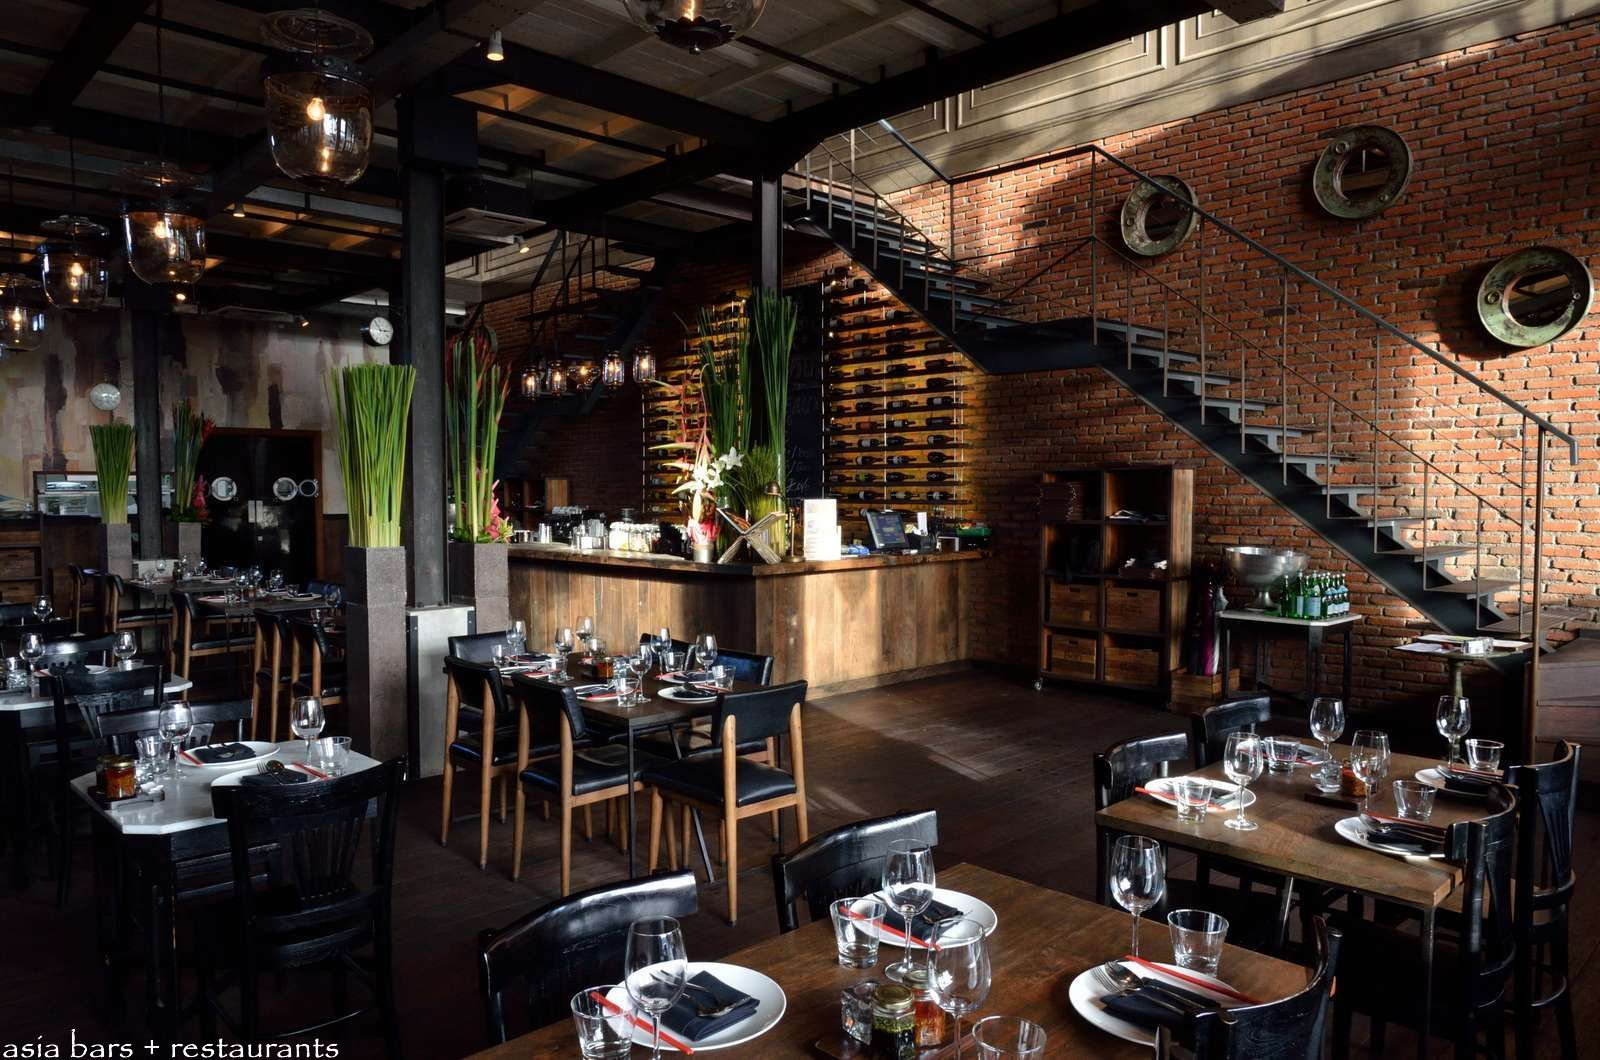 The Kitchen Garden Cafe Industrial Cafe Google Search Cafe Design Interior Pinterest